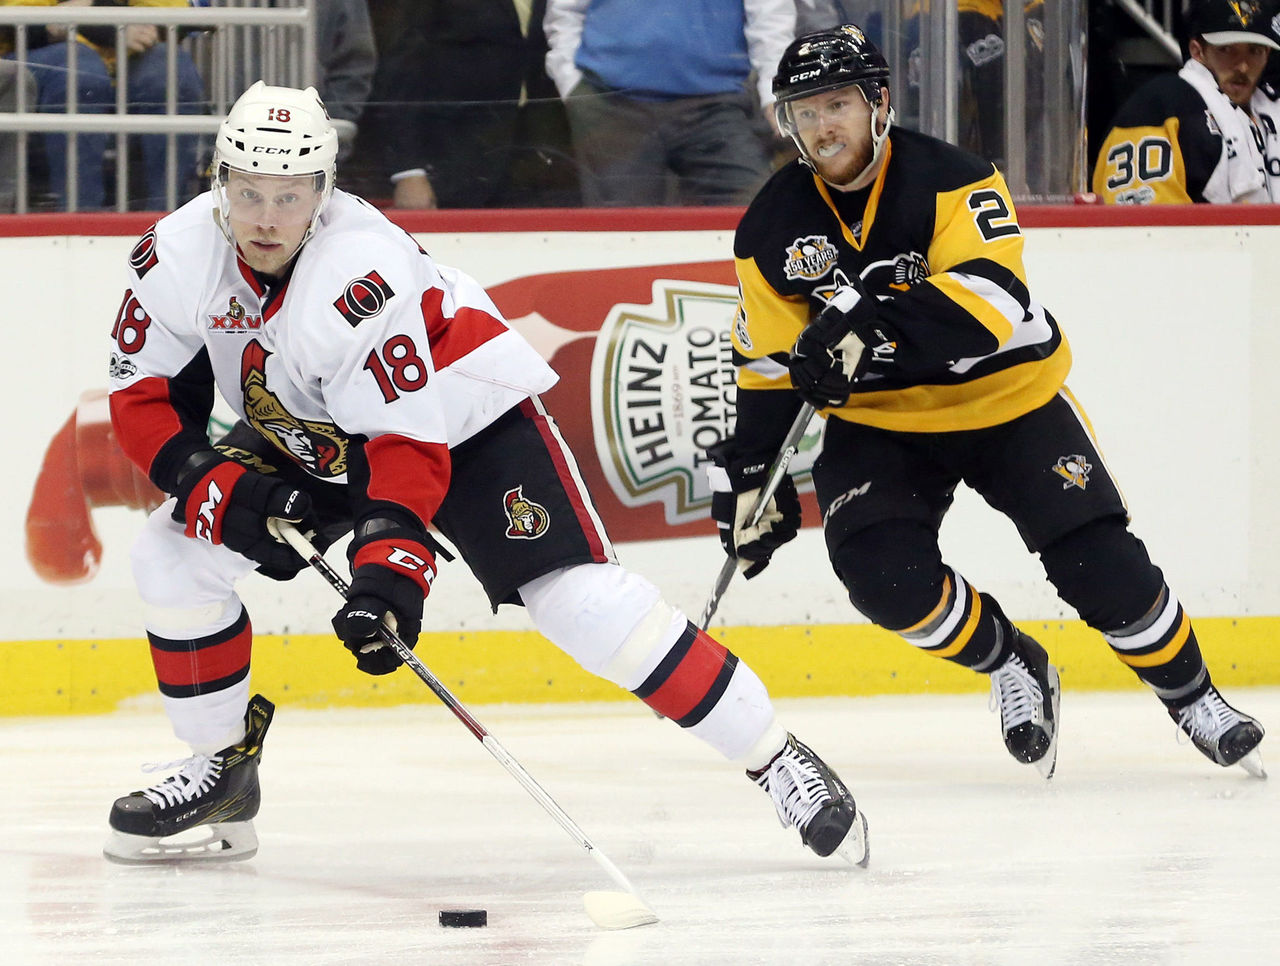 Cropped_2017-05-14t021845z_984835613_nocid_rtrmadp_3_nhl-stanley-cup-playoffs-ottawa-senators-at-pittsburgh-penguins